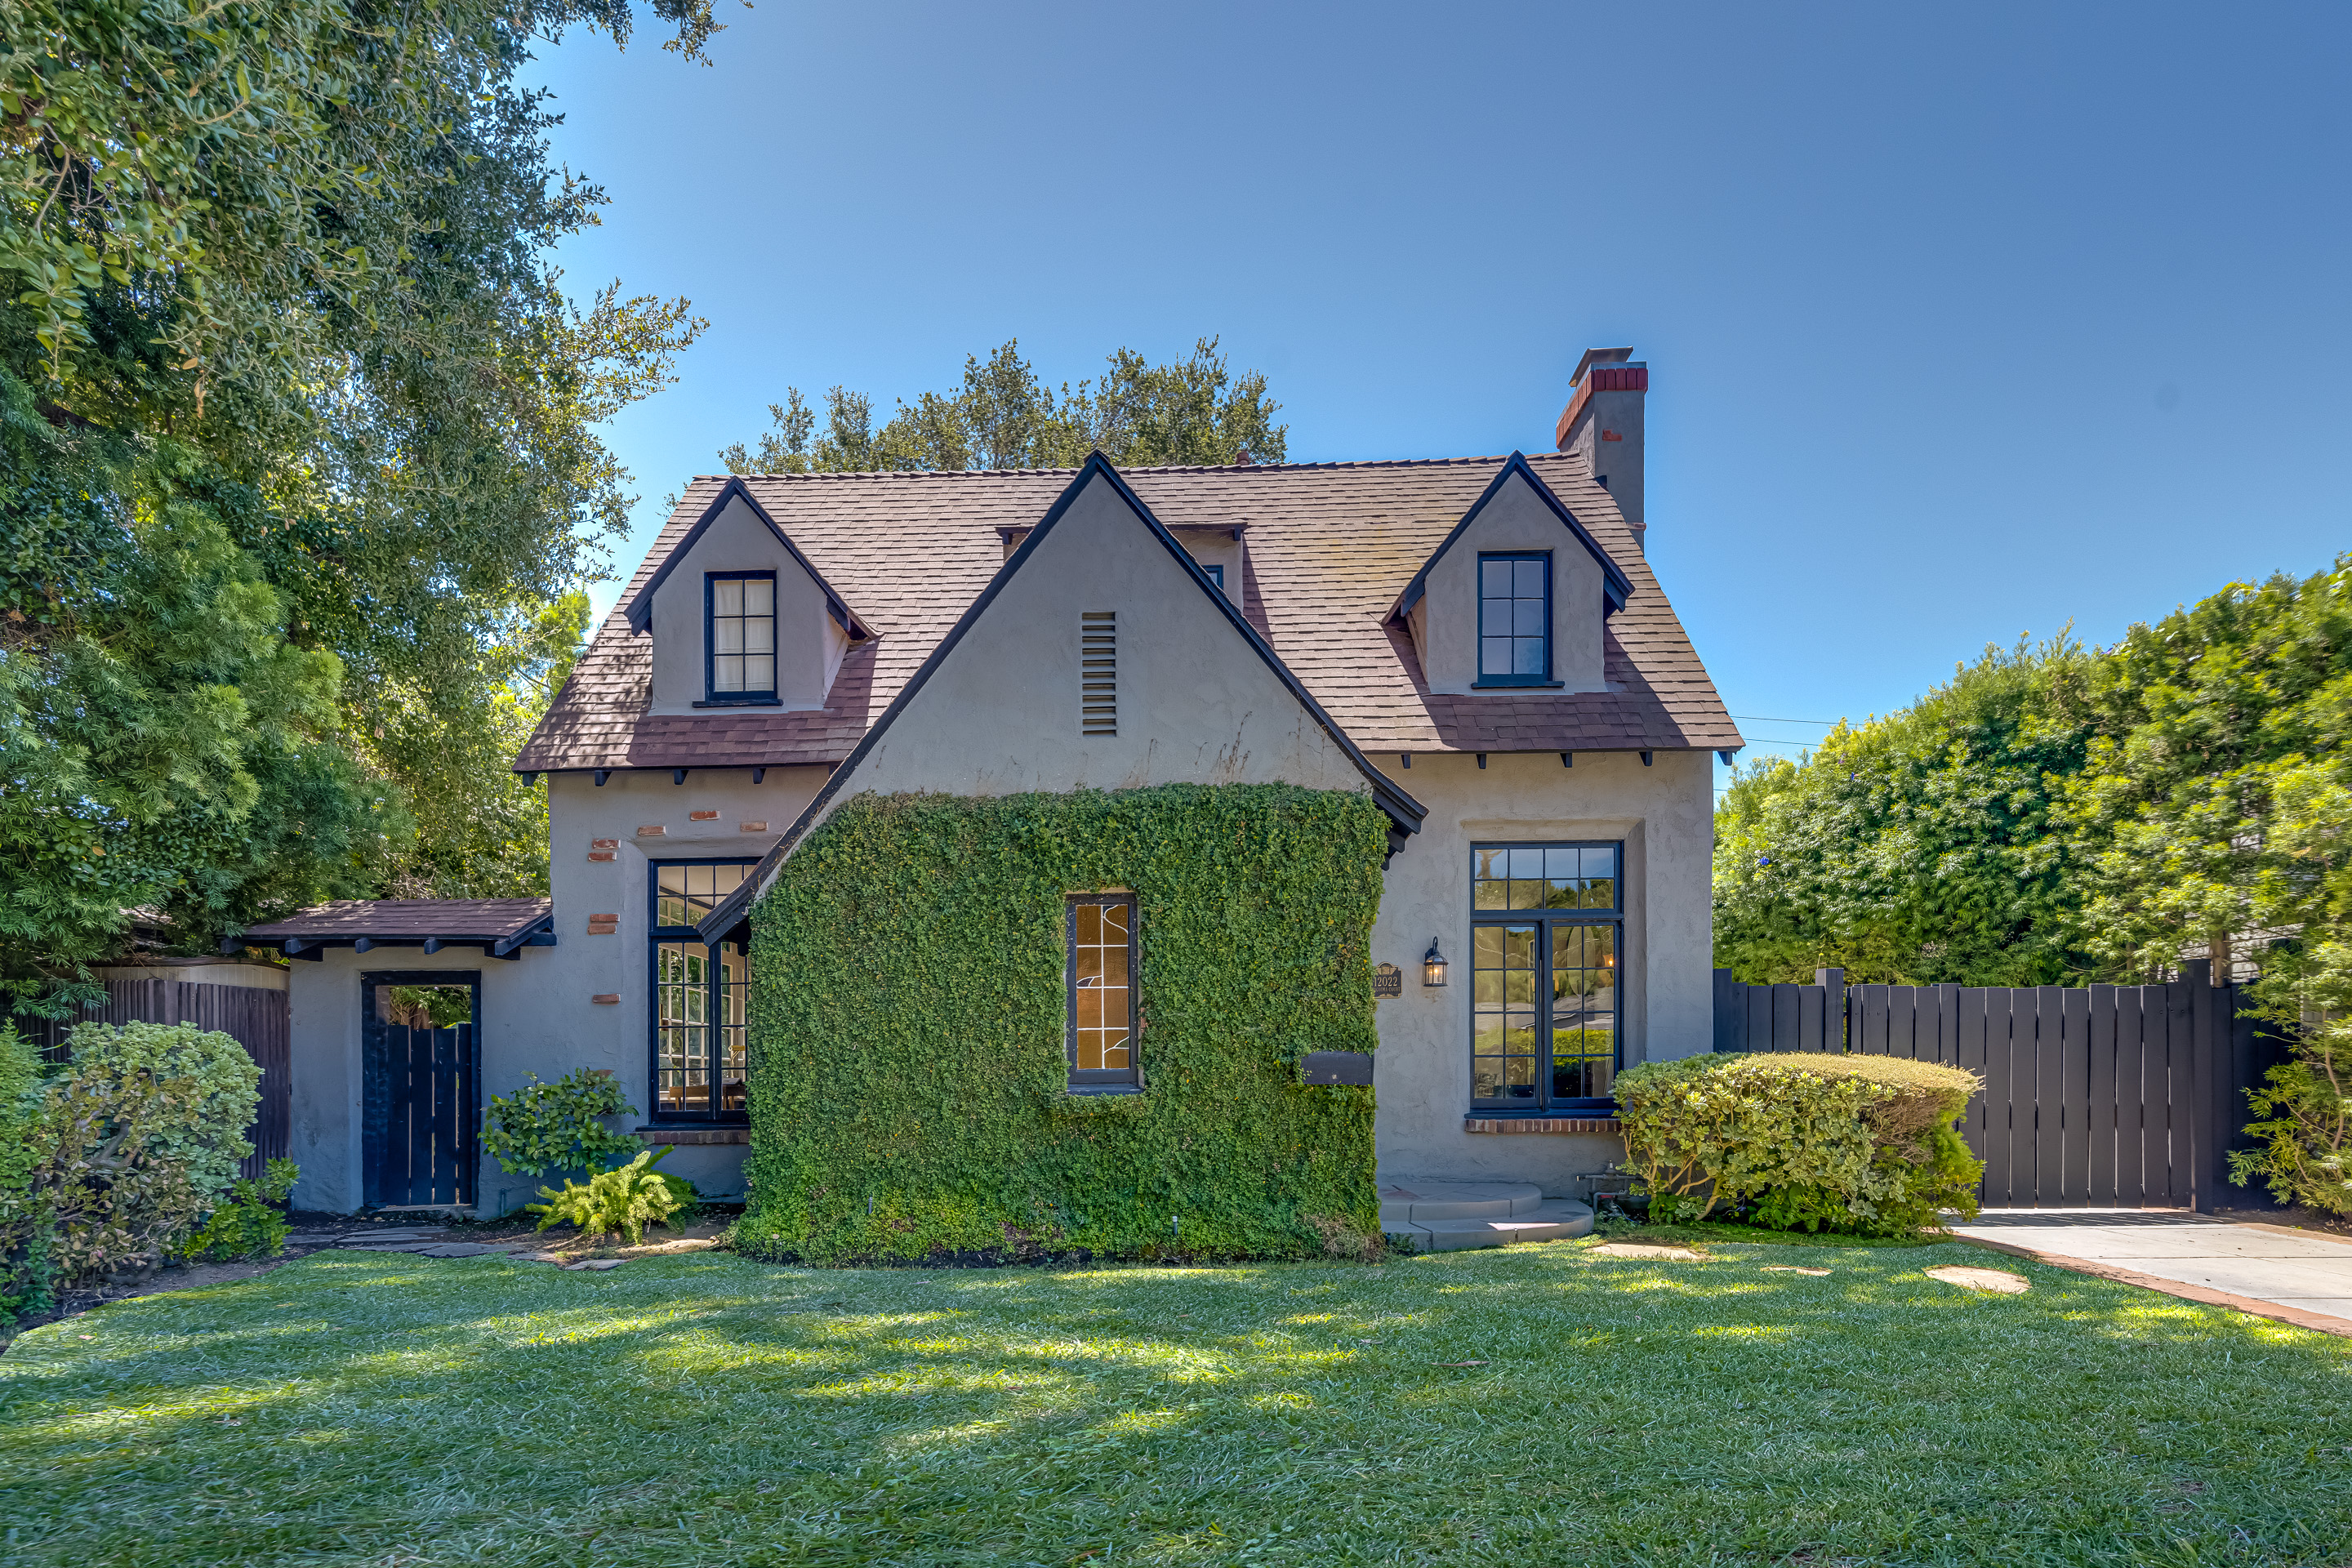 Studio City Tudor